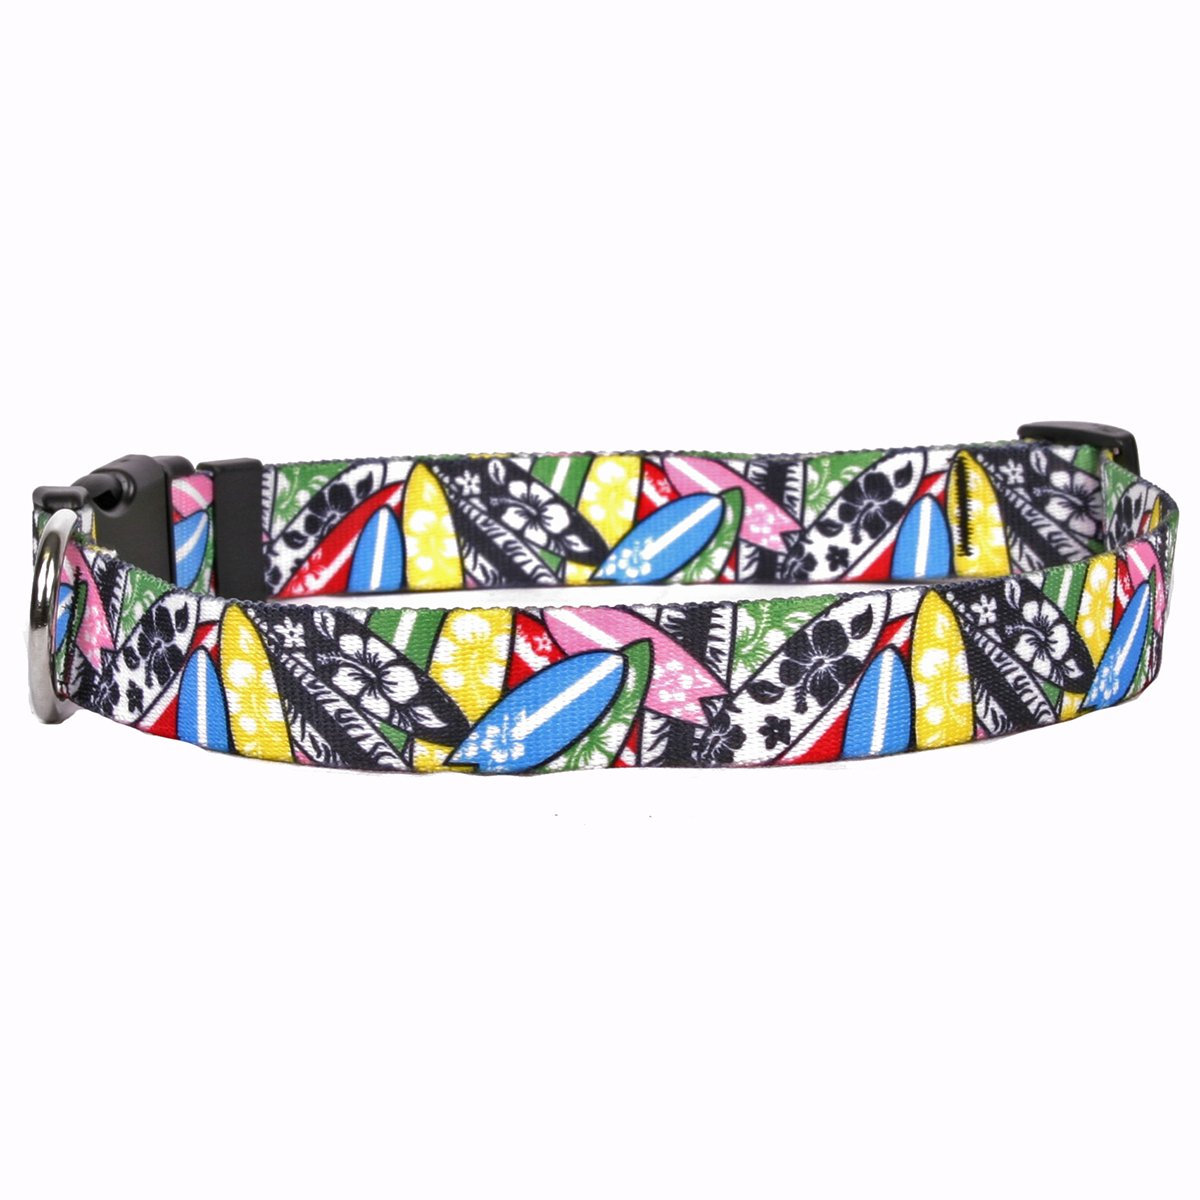 Yellow Dog Design Surfboards Dog Collar - Size Small 10'' - 12'' by Yellow Dog Design